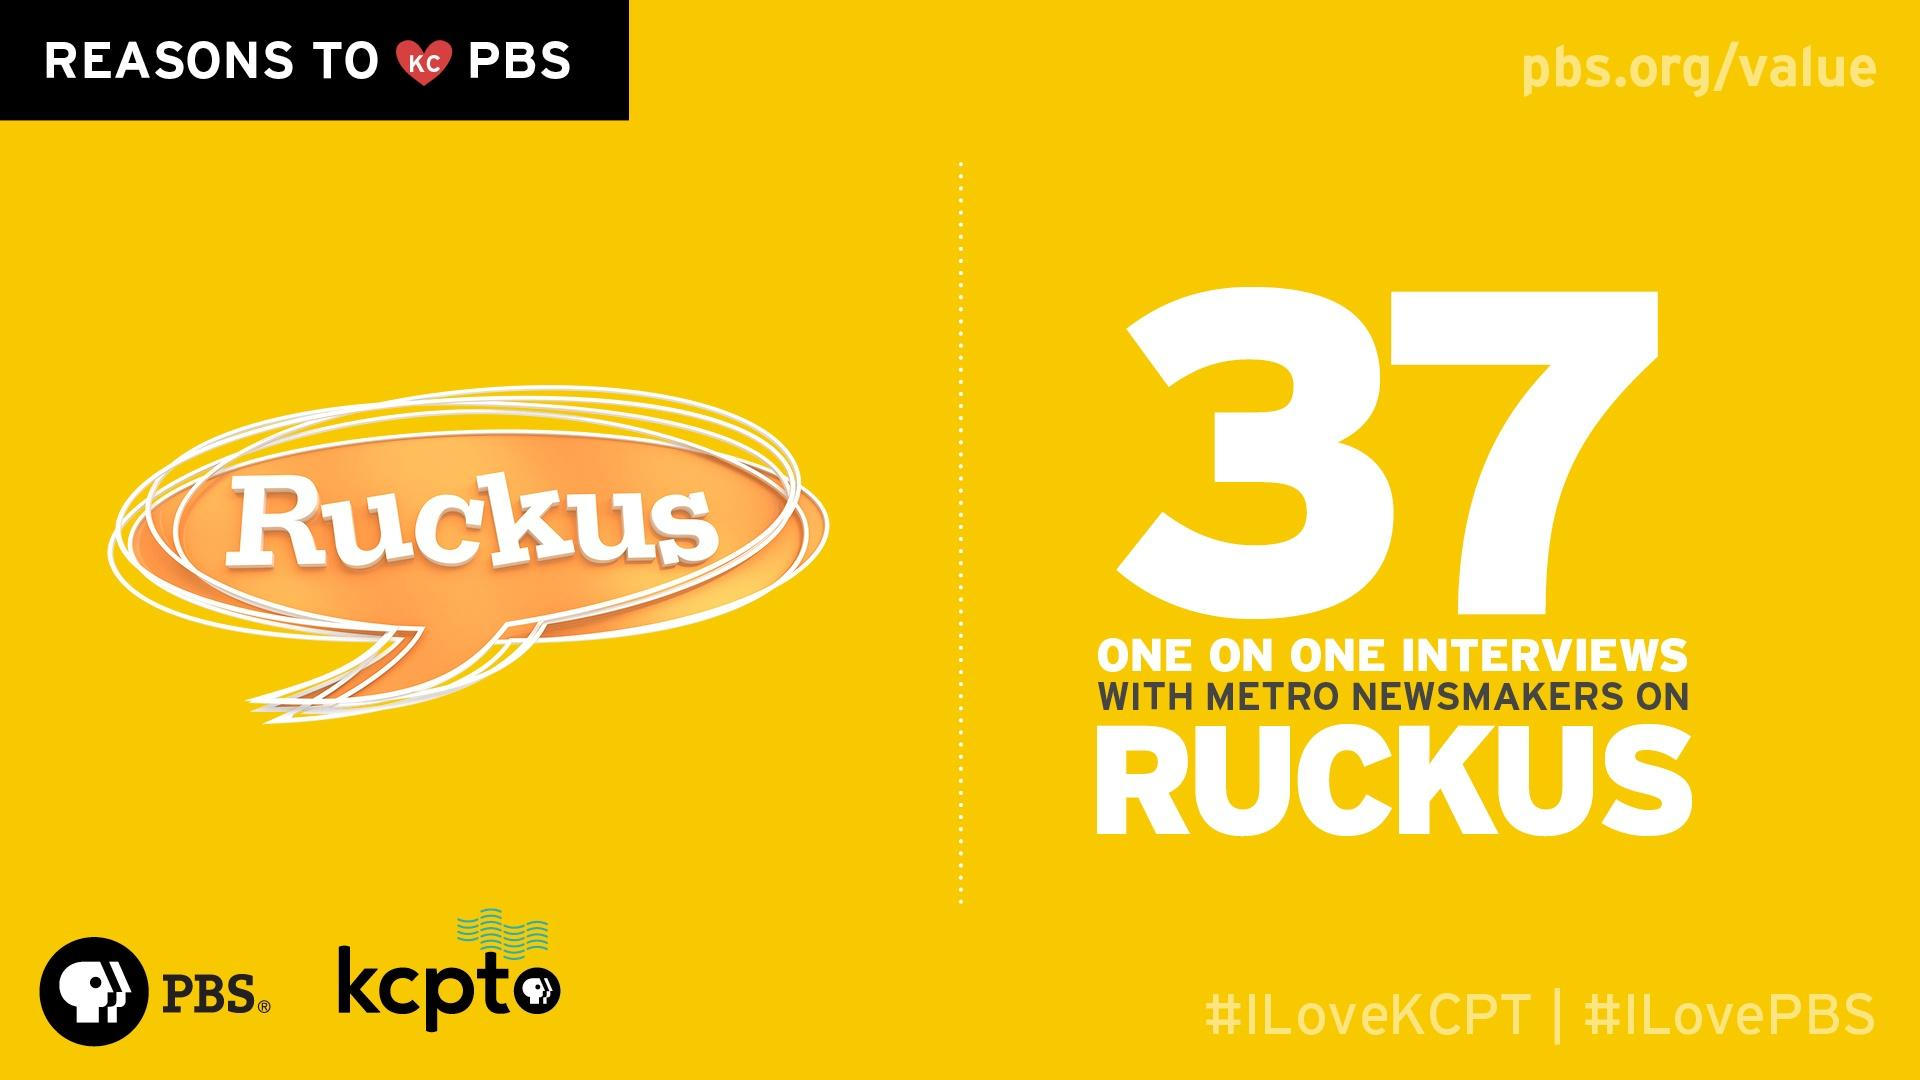 37 one on one interviews with metro newsmakers on Ruckus.